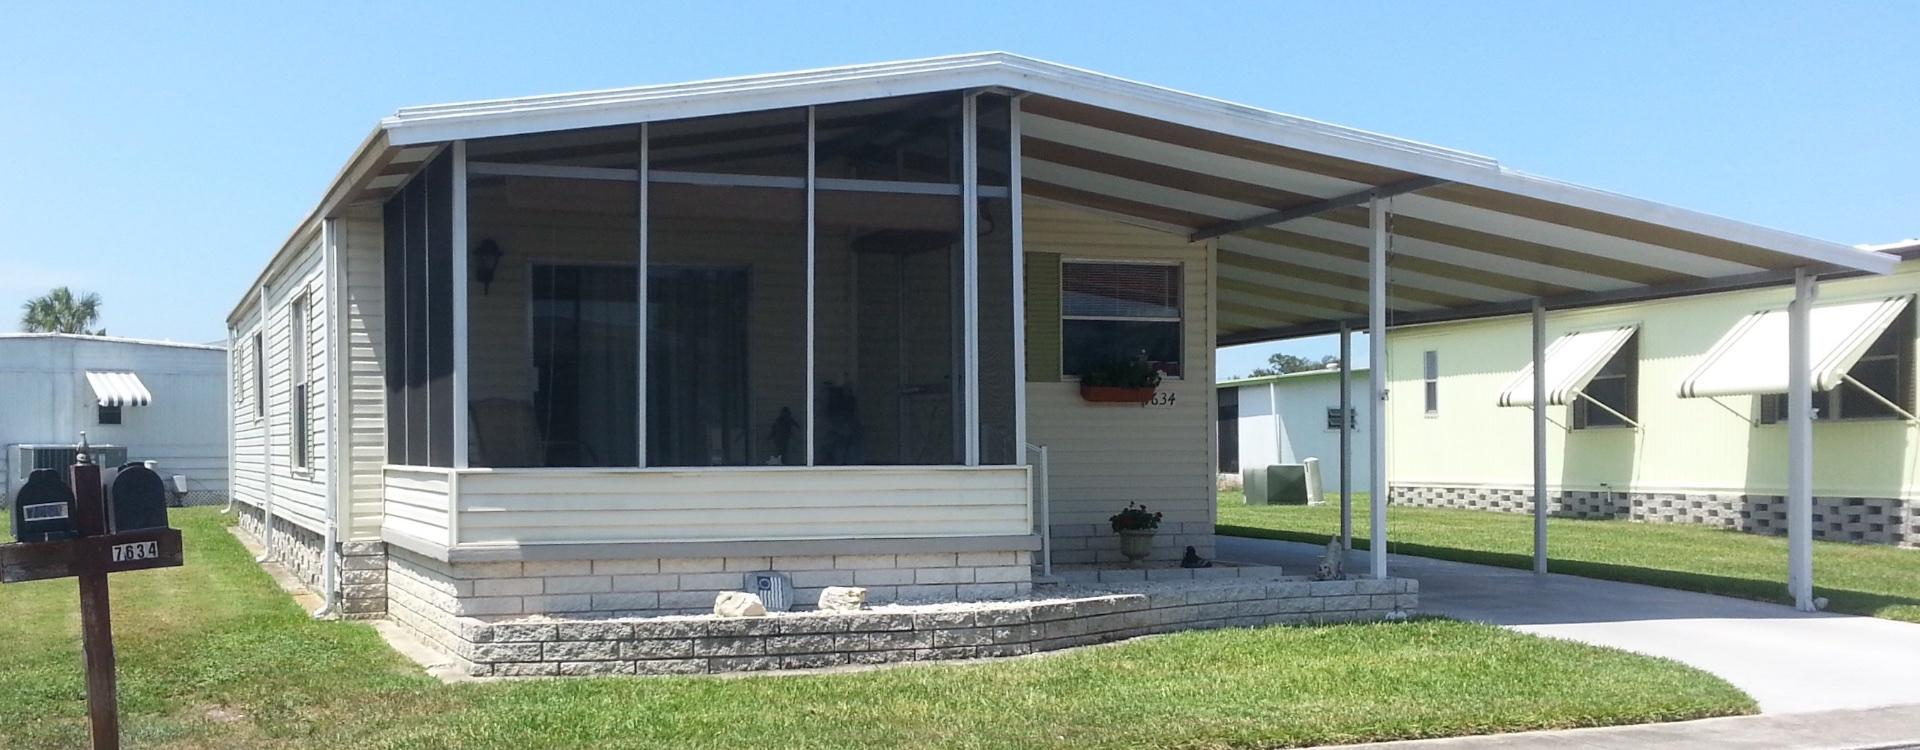 Mobile Homes For Sale In Wildwood Fl